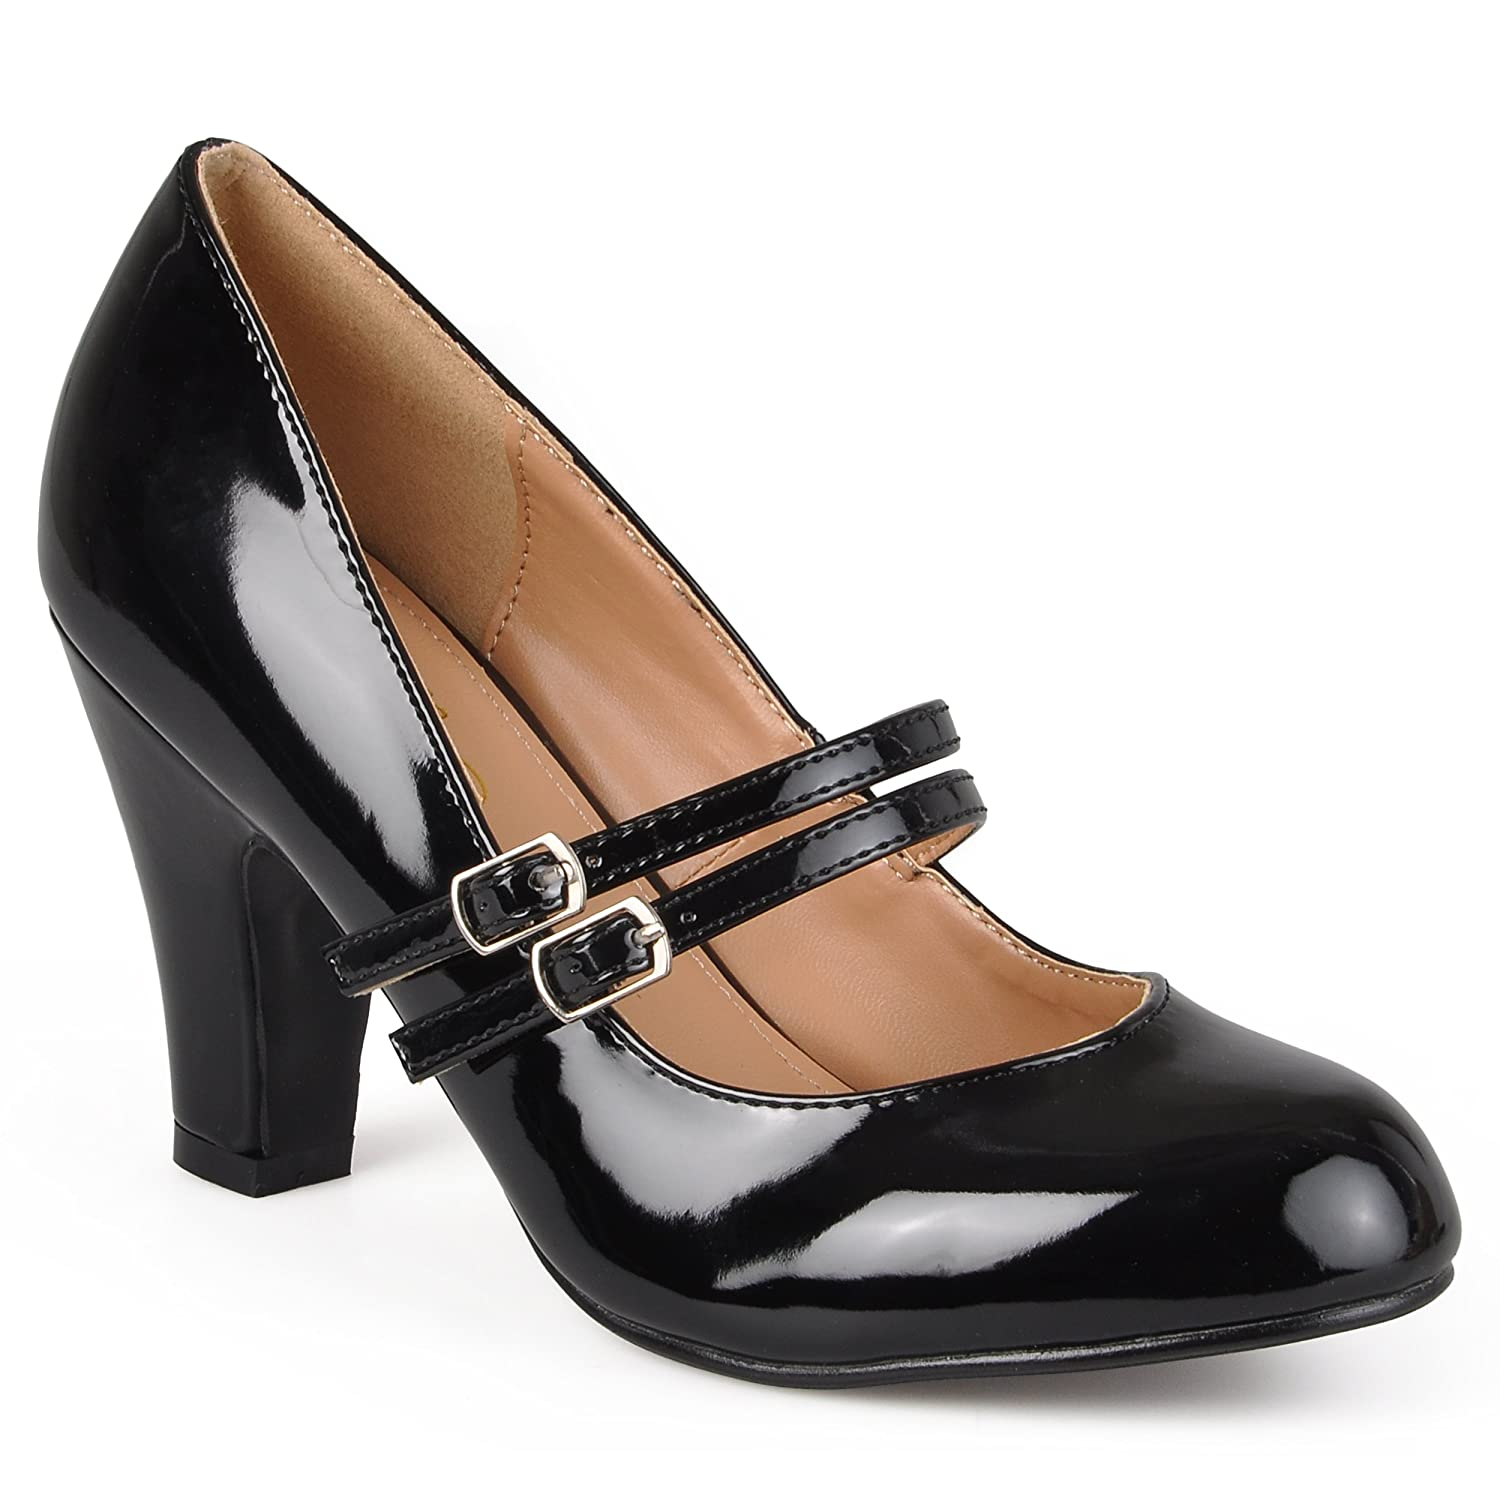 Shop Pin Up Shoes Journee Mary Jane Faux Leather Pumps $31.99 AT vintagedancer.com